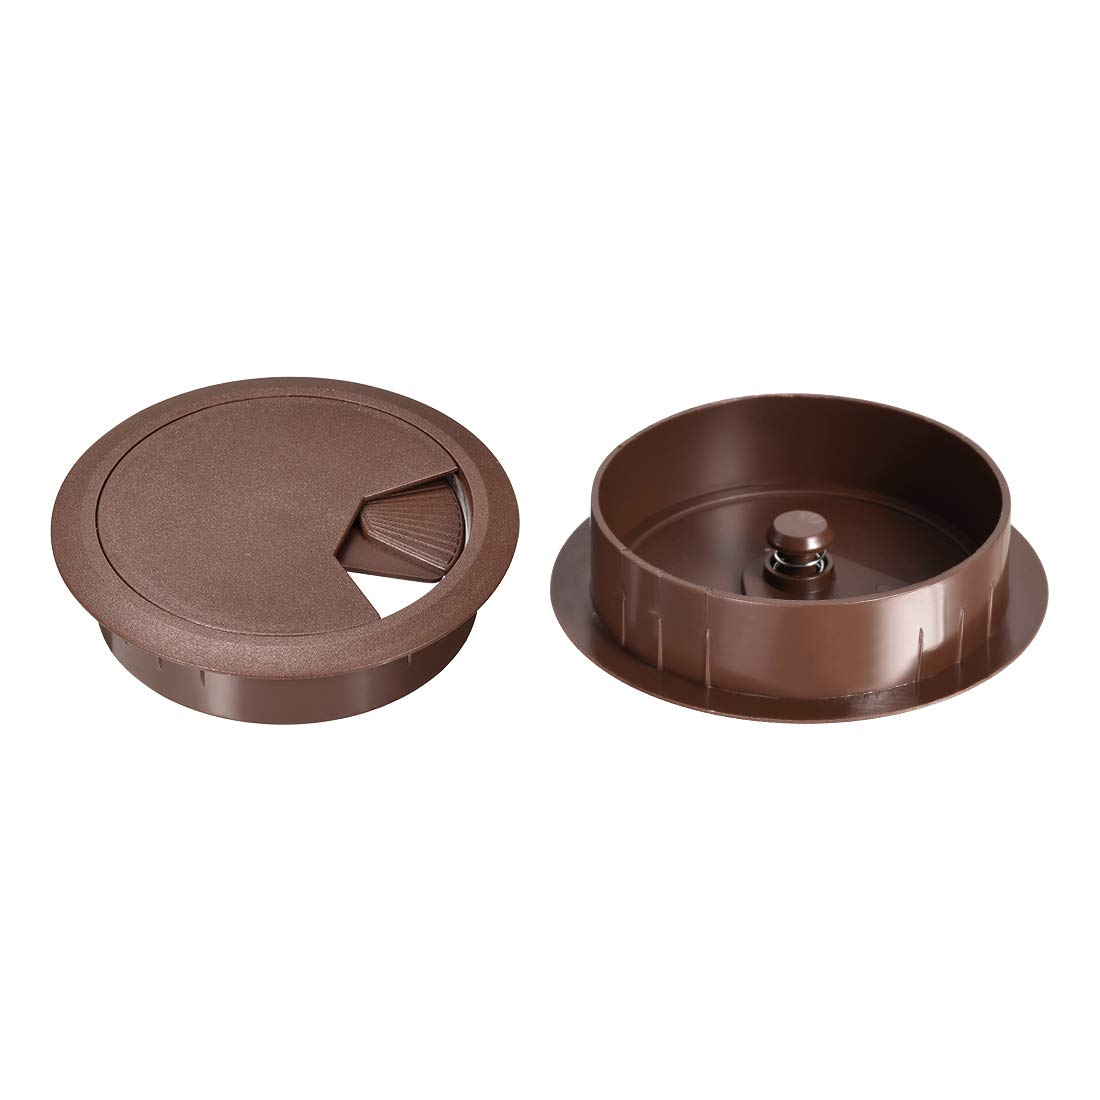 uxcell Cable Hole Cover, 3-3/20'' Plastic Desk Grommet for Wire Organizer 20Pcs (Brown)